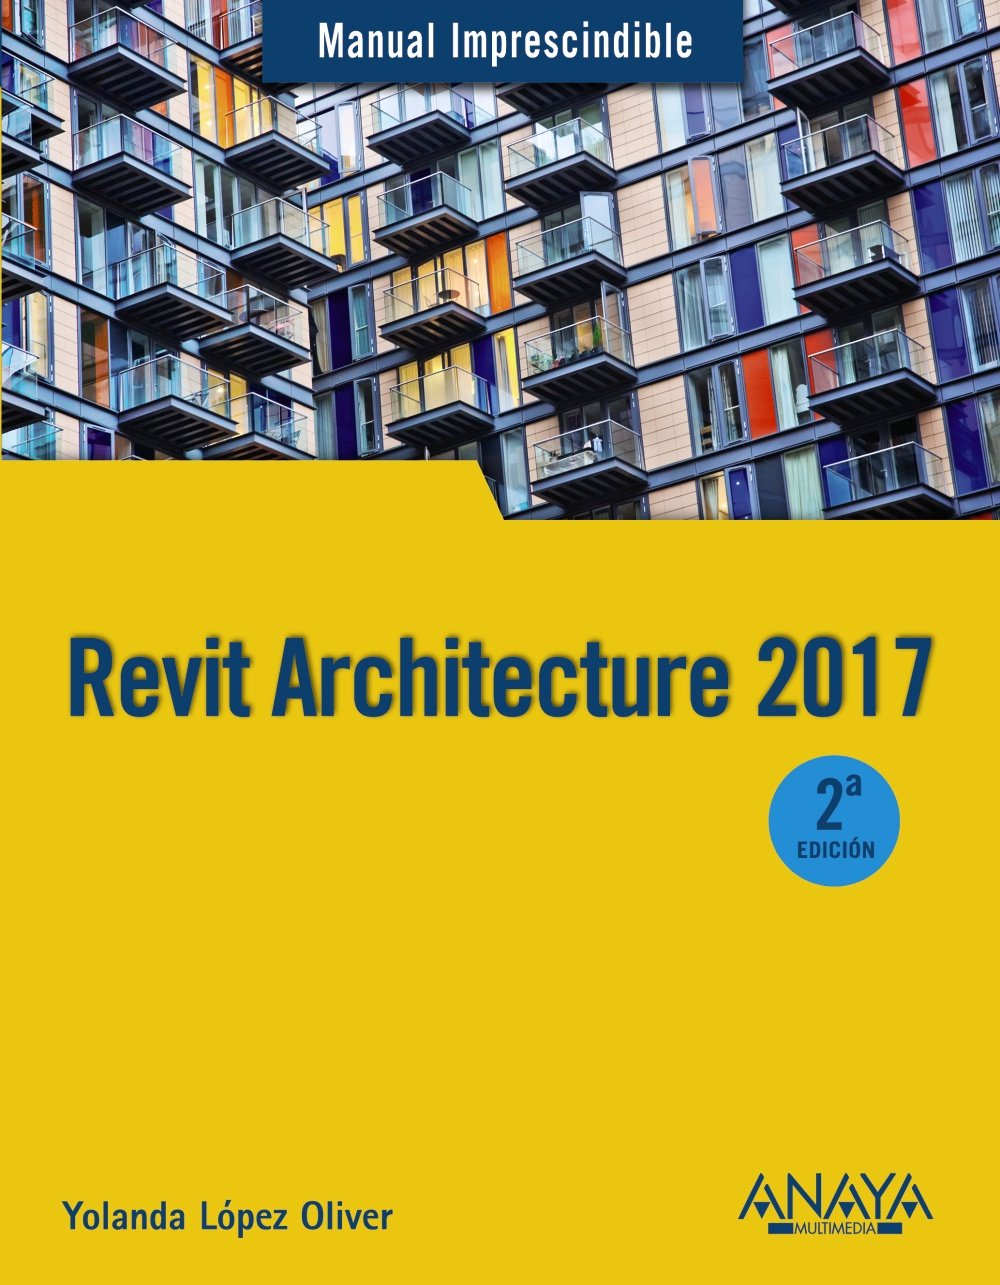 Revit Architecture 2017 (Manuales Imprescindibles) Tapa blanda – 22 sep 2016 Yolanda López Oliver ANAYA MULTIMEDIA 8441538271 Computer-aided design (CAD)